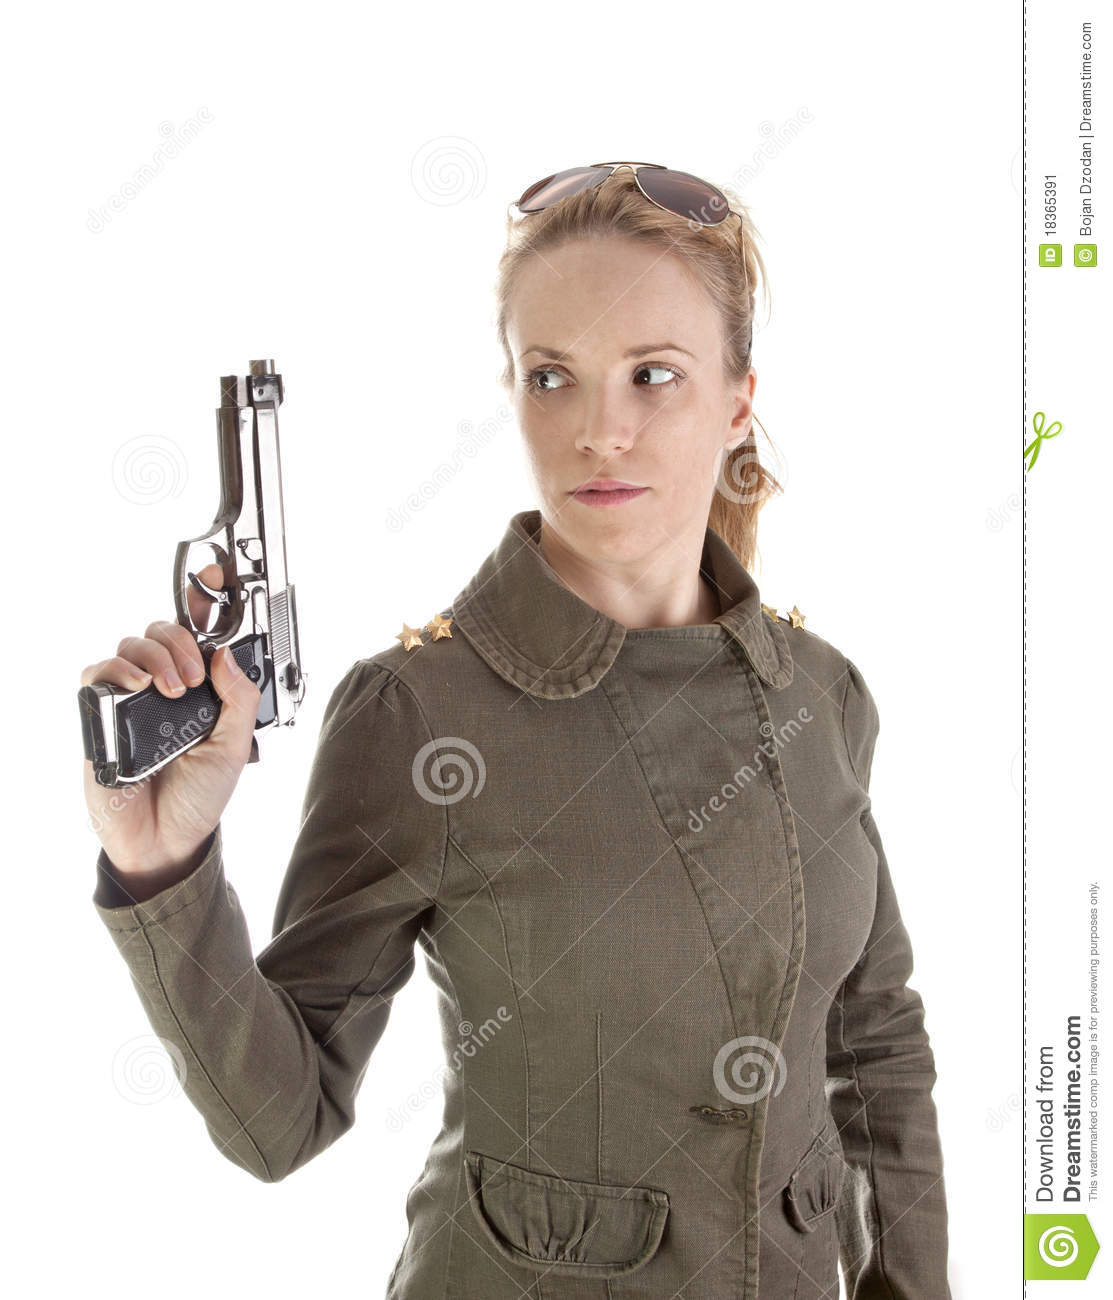 Are military naked army girl holding a gun